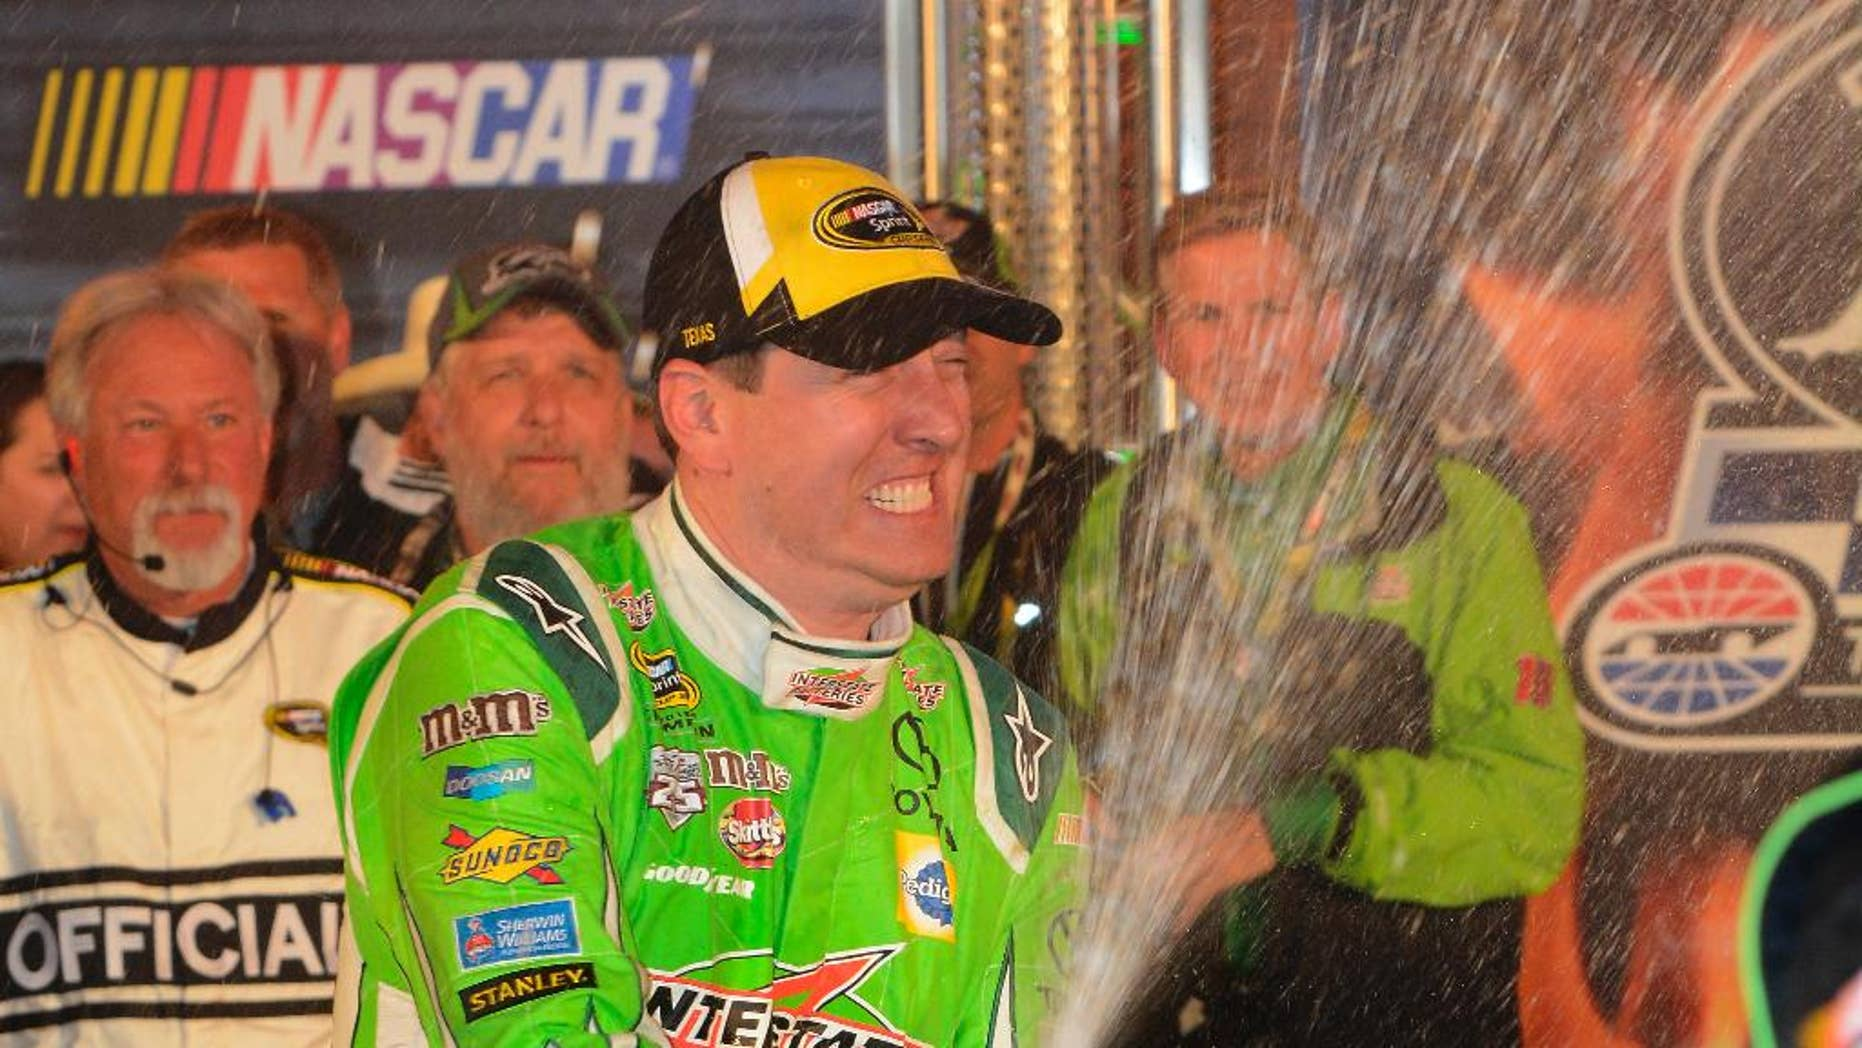 Kyle Busch (18) celebrates winning the NASCAR Sprint Cup Series auto race at Texas Motor Speedway in Fort Worth, Texas, Sunday, April 10, 2016. (AP Photo/Larry Papke)